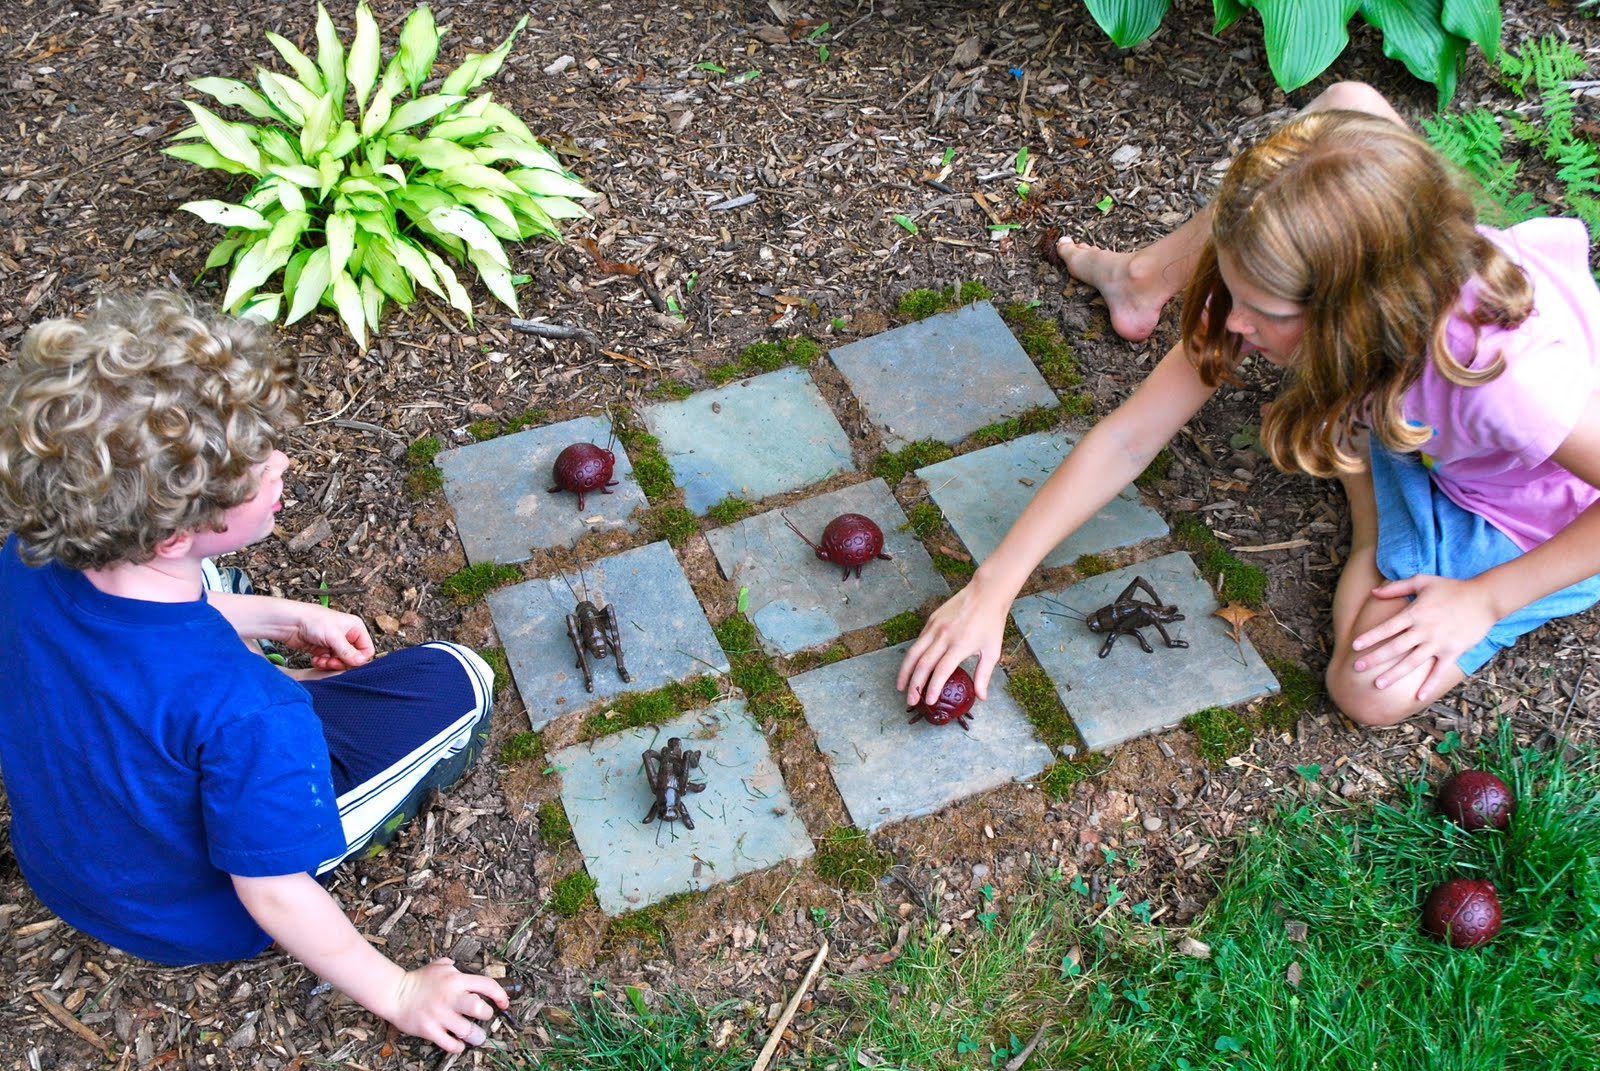 Backyard Games Toddlers